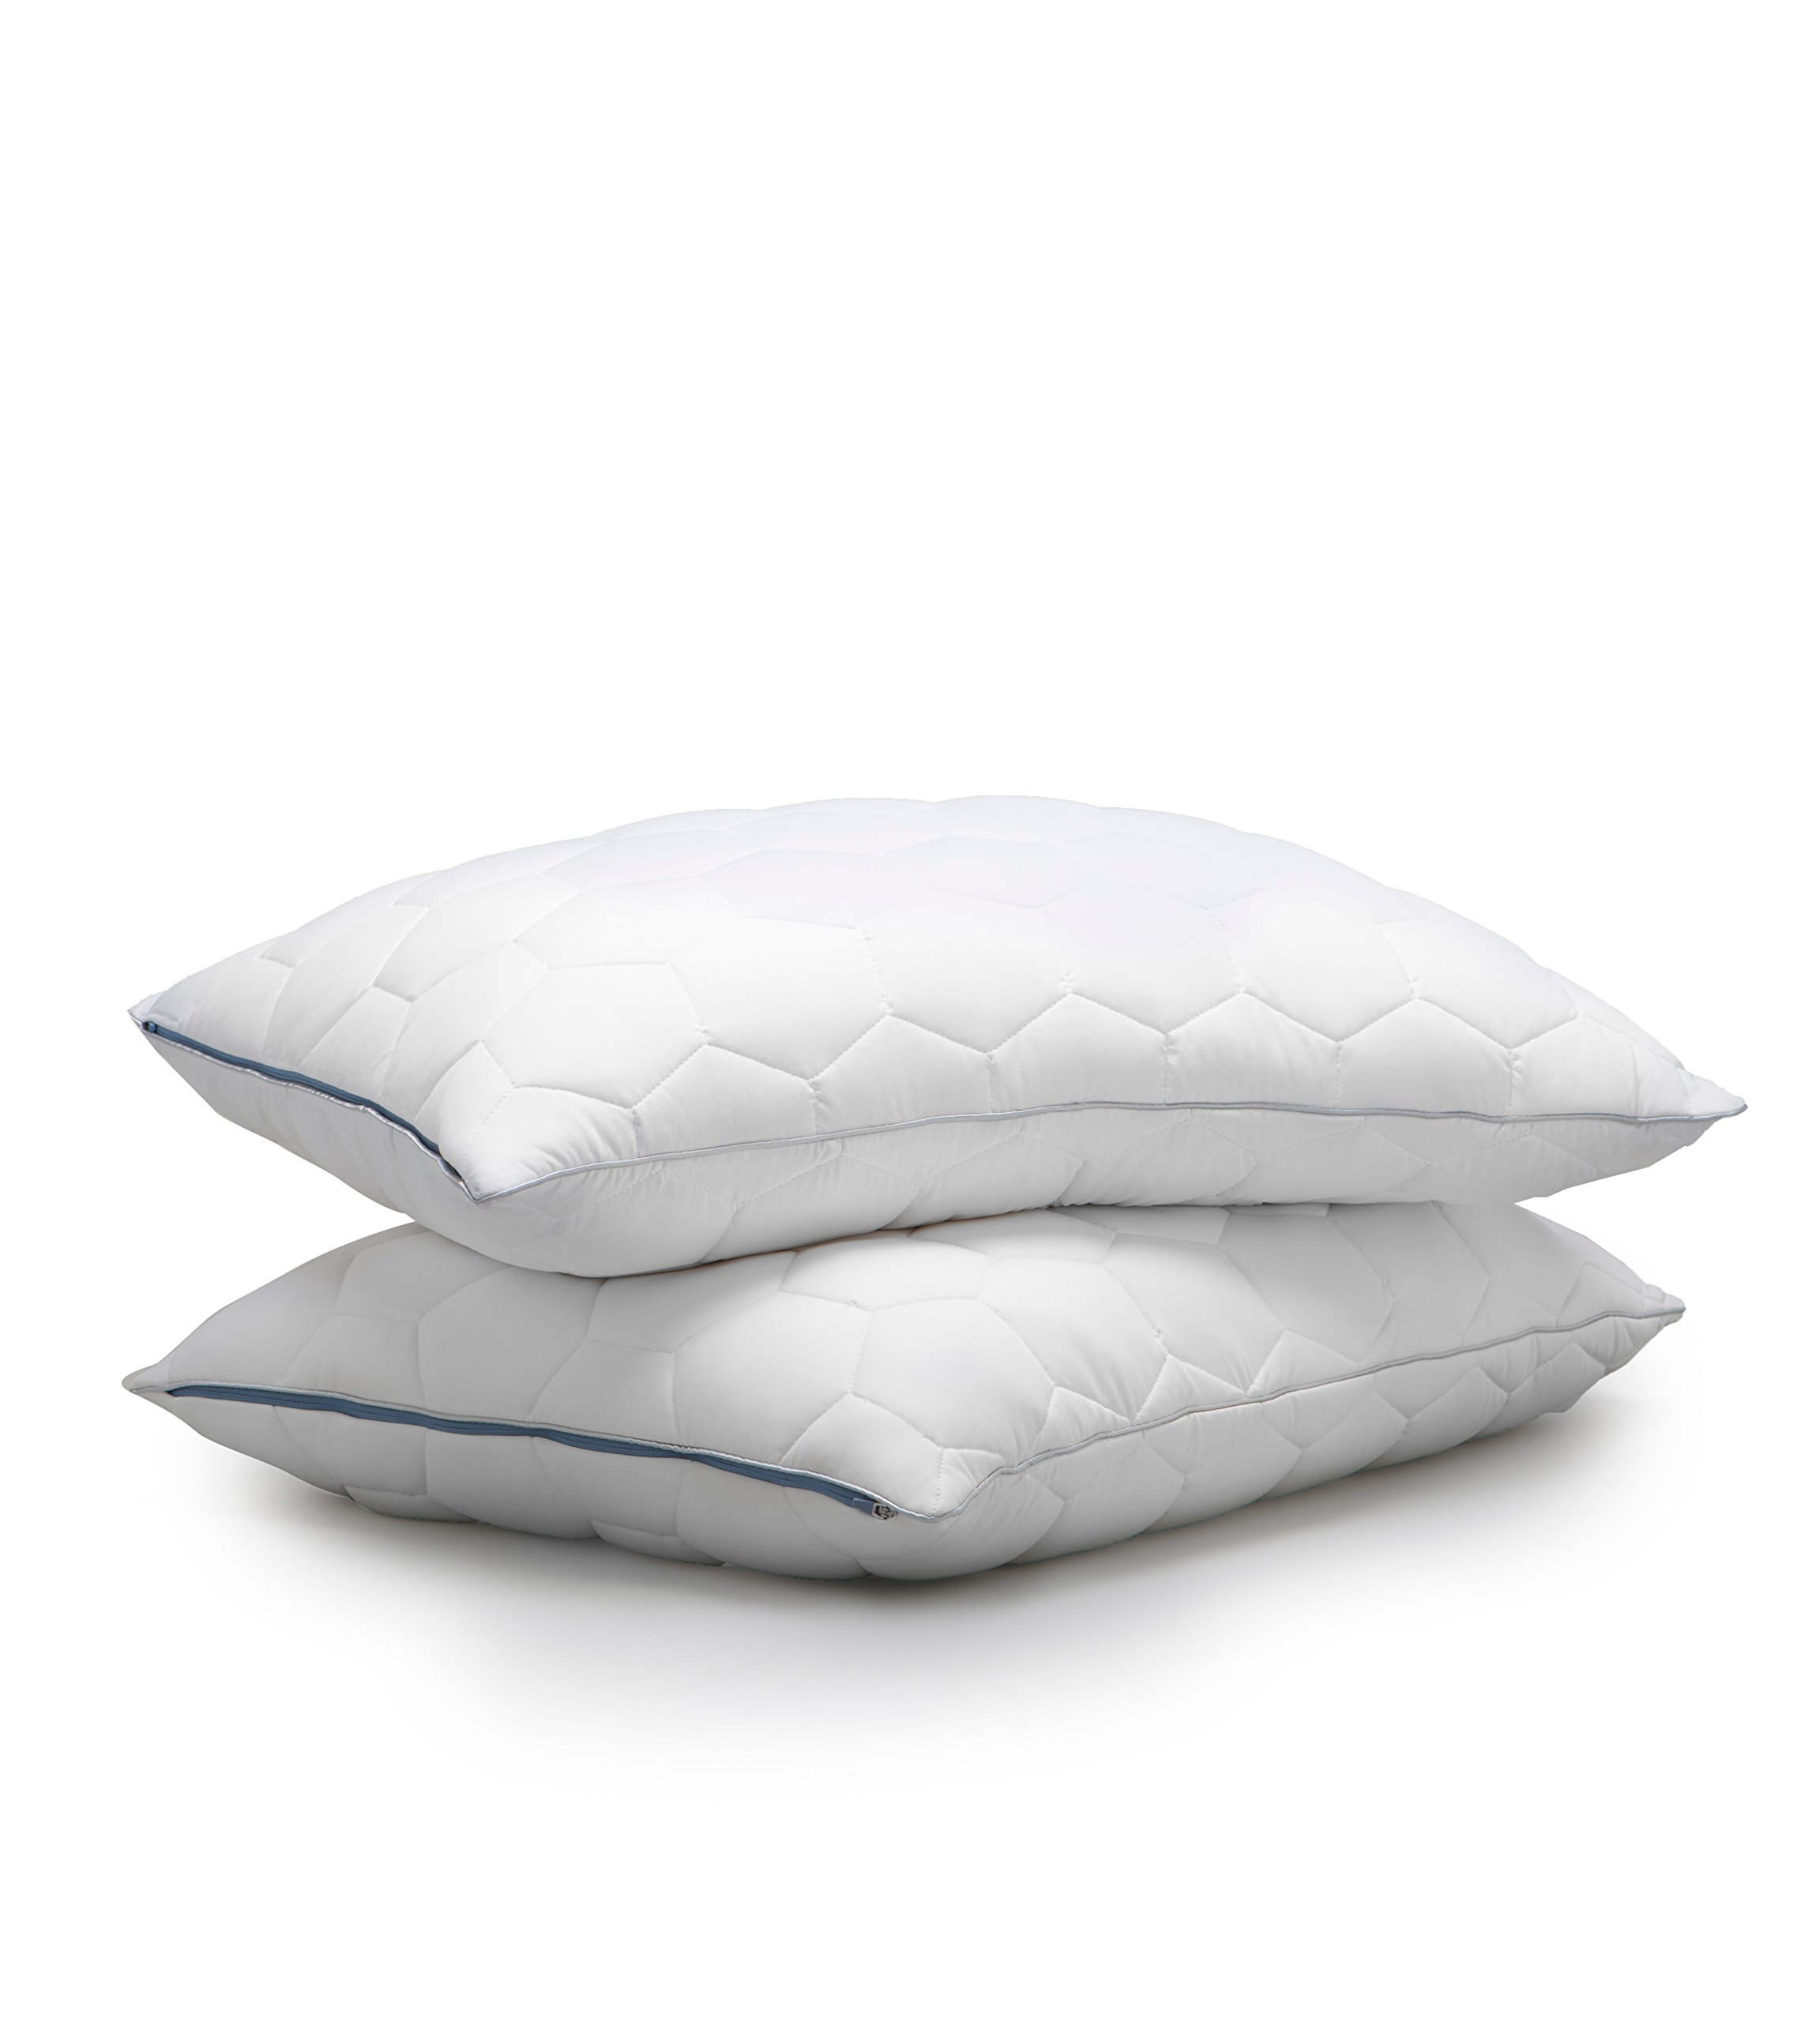 SHEEX - ORIGINAL PERFORMANCE Down Back/Stomach Sleeper Pillow, Helps to Promote a Better, Cooler Night's Sleep (King)